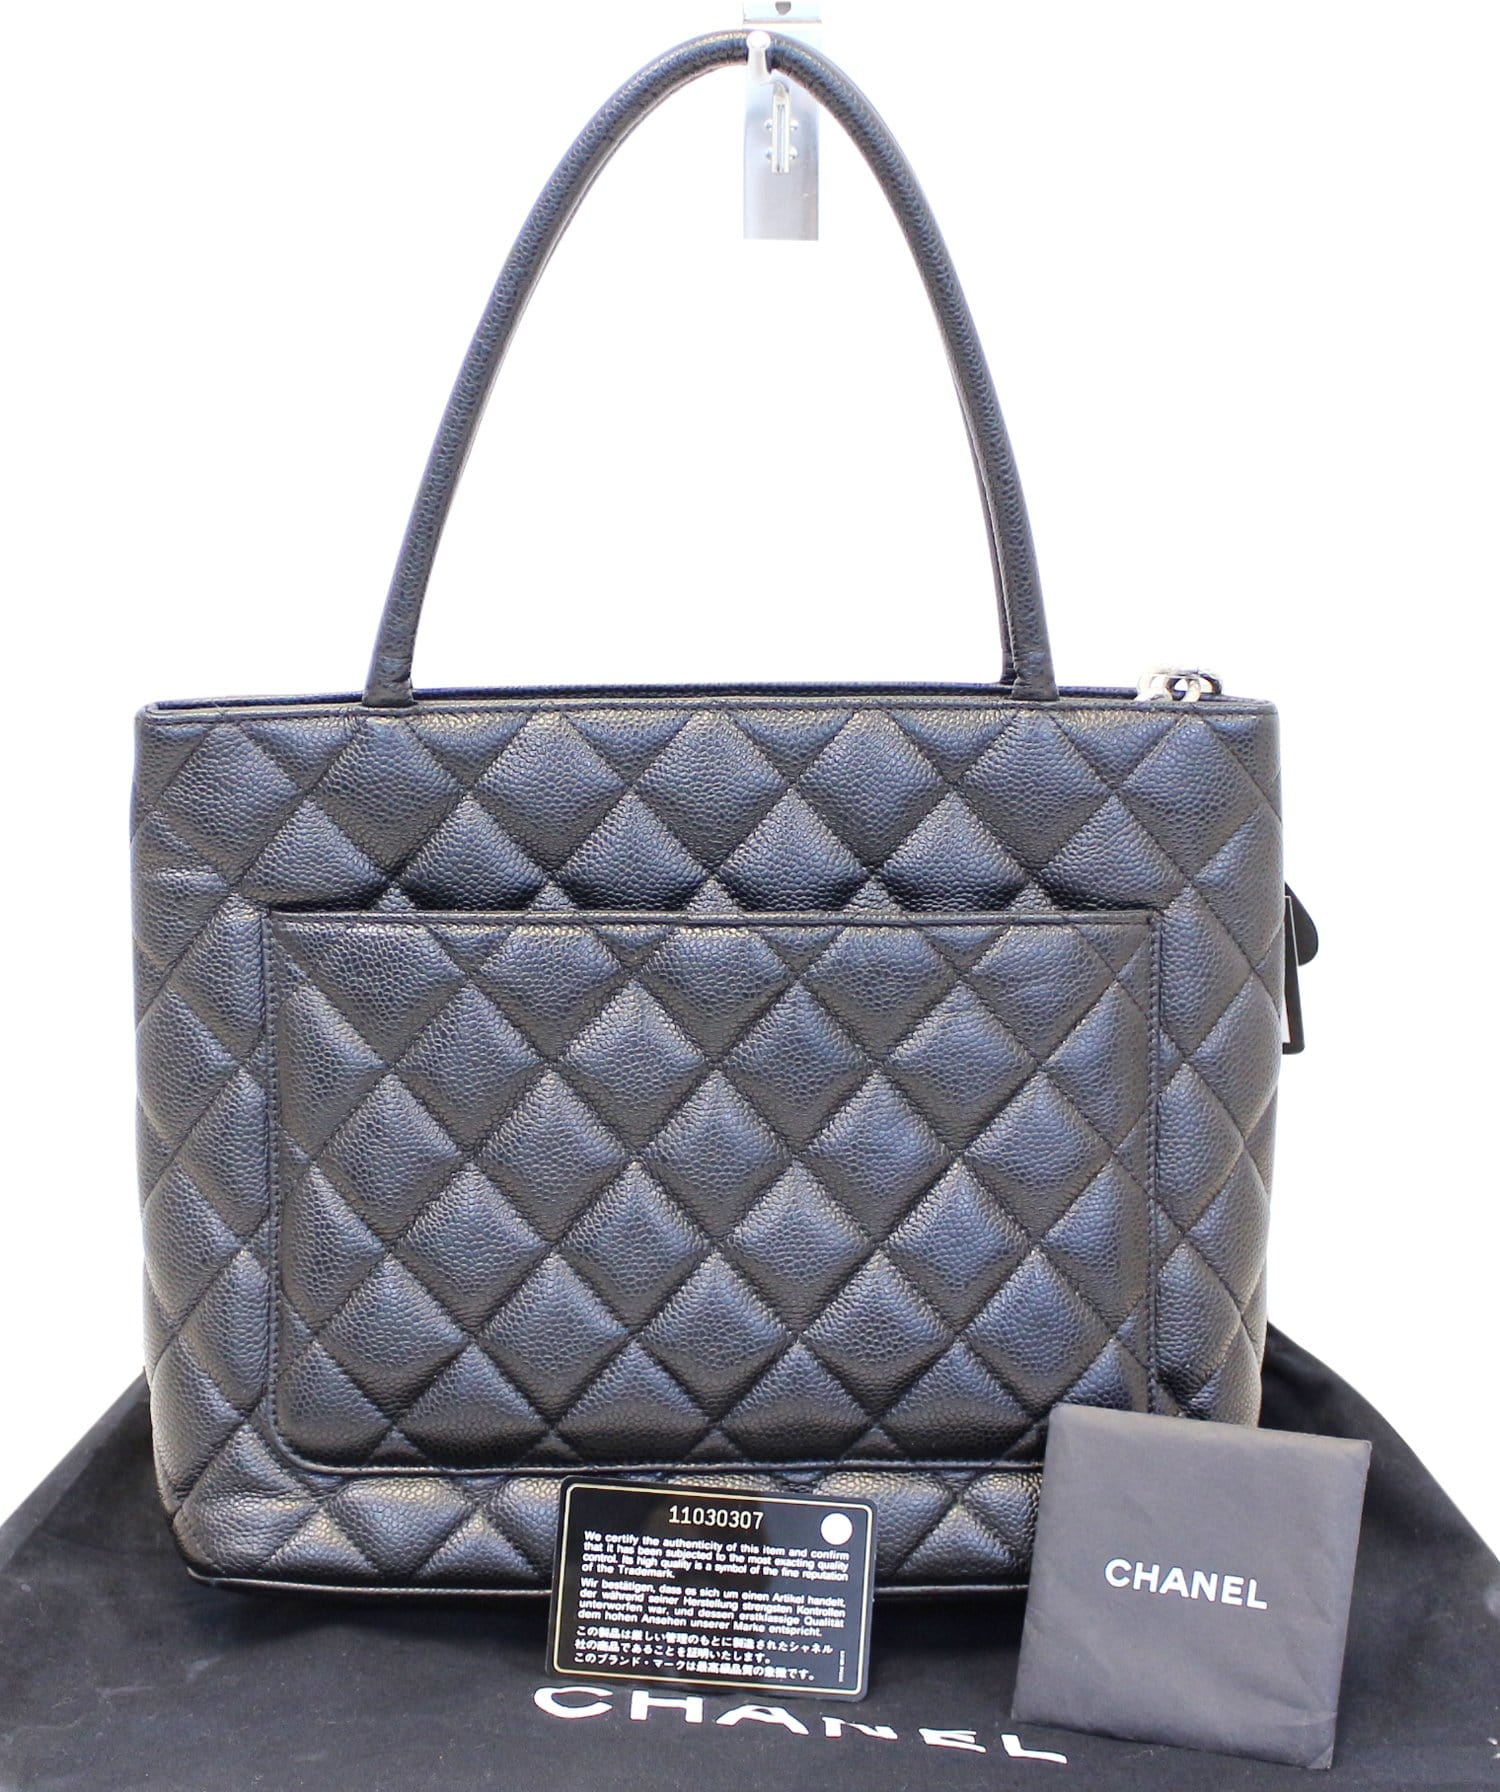 a83976623 CHANEL Black Quilted Caviar Leather Medallion Tote Bag